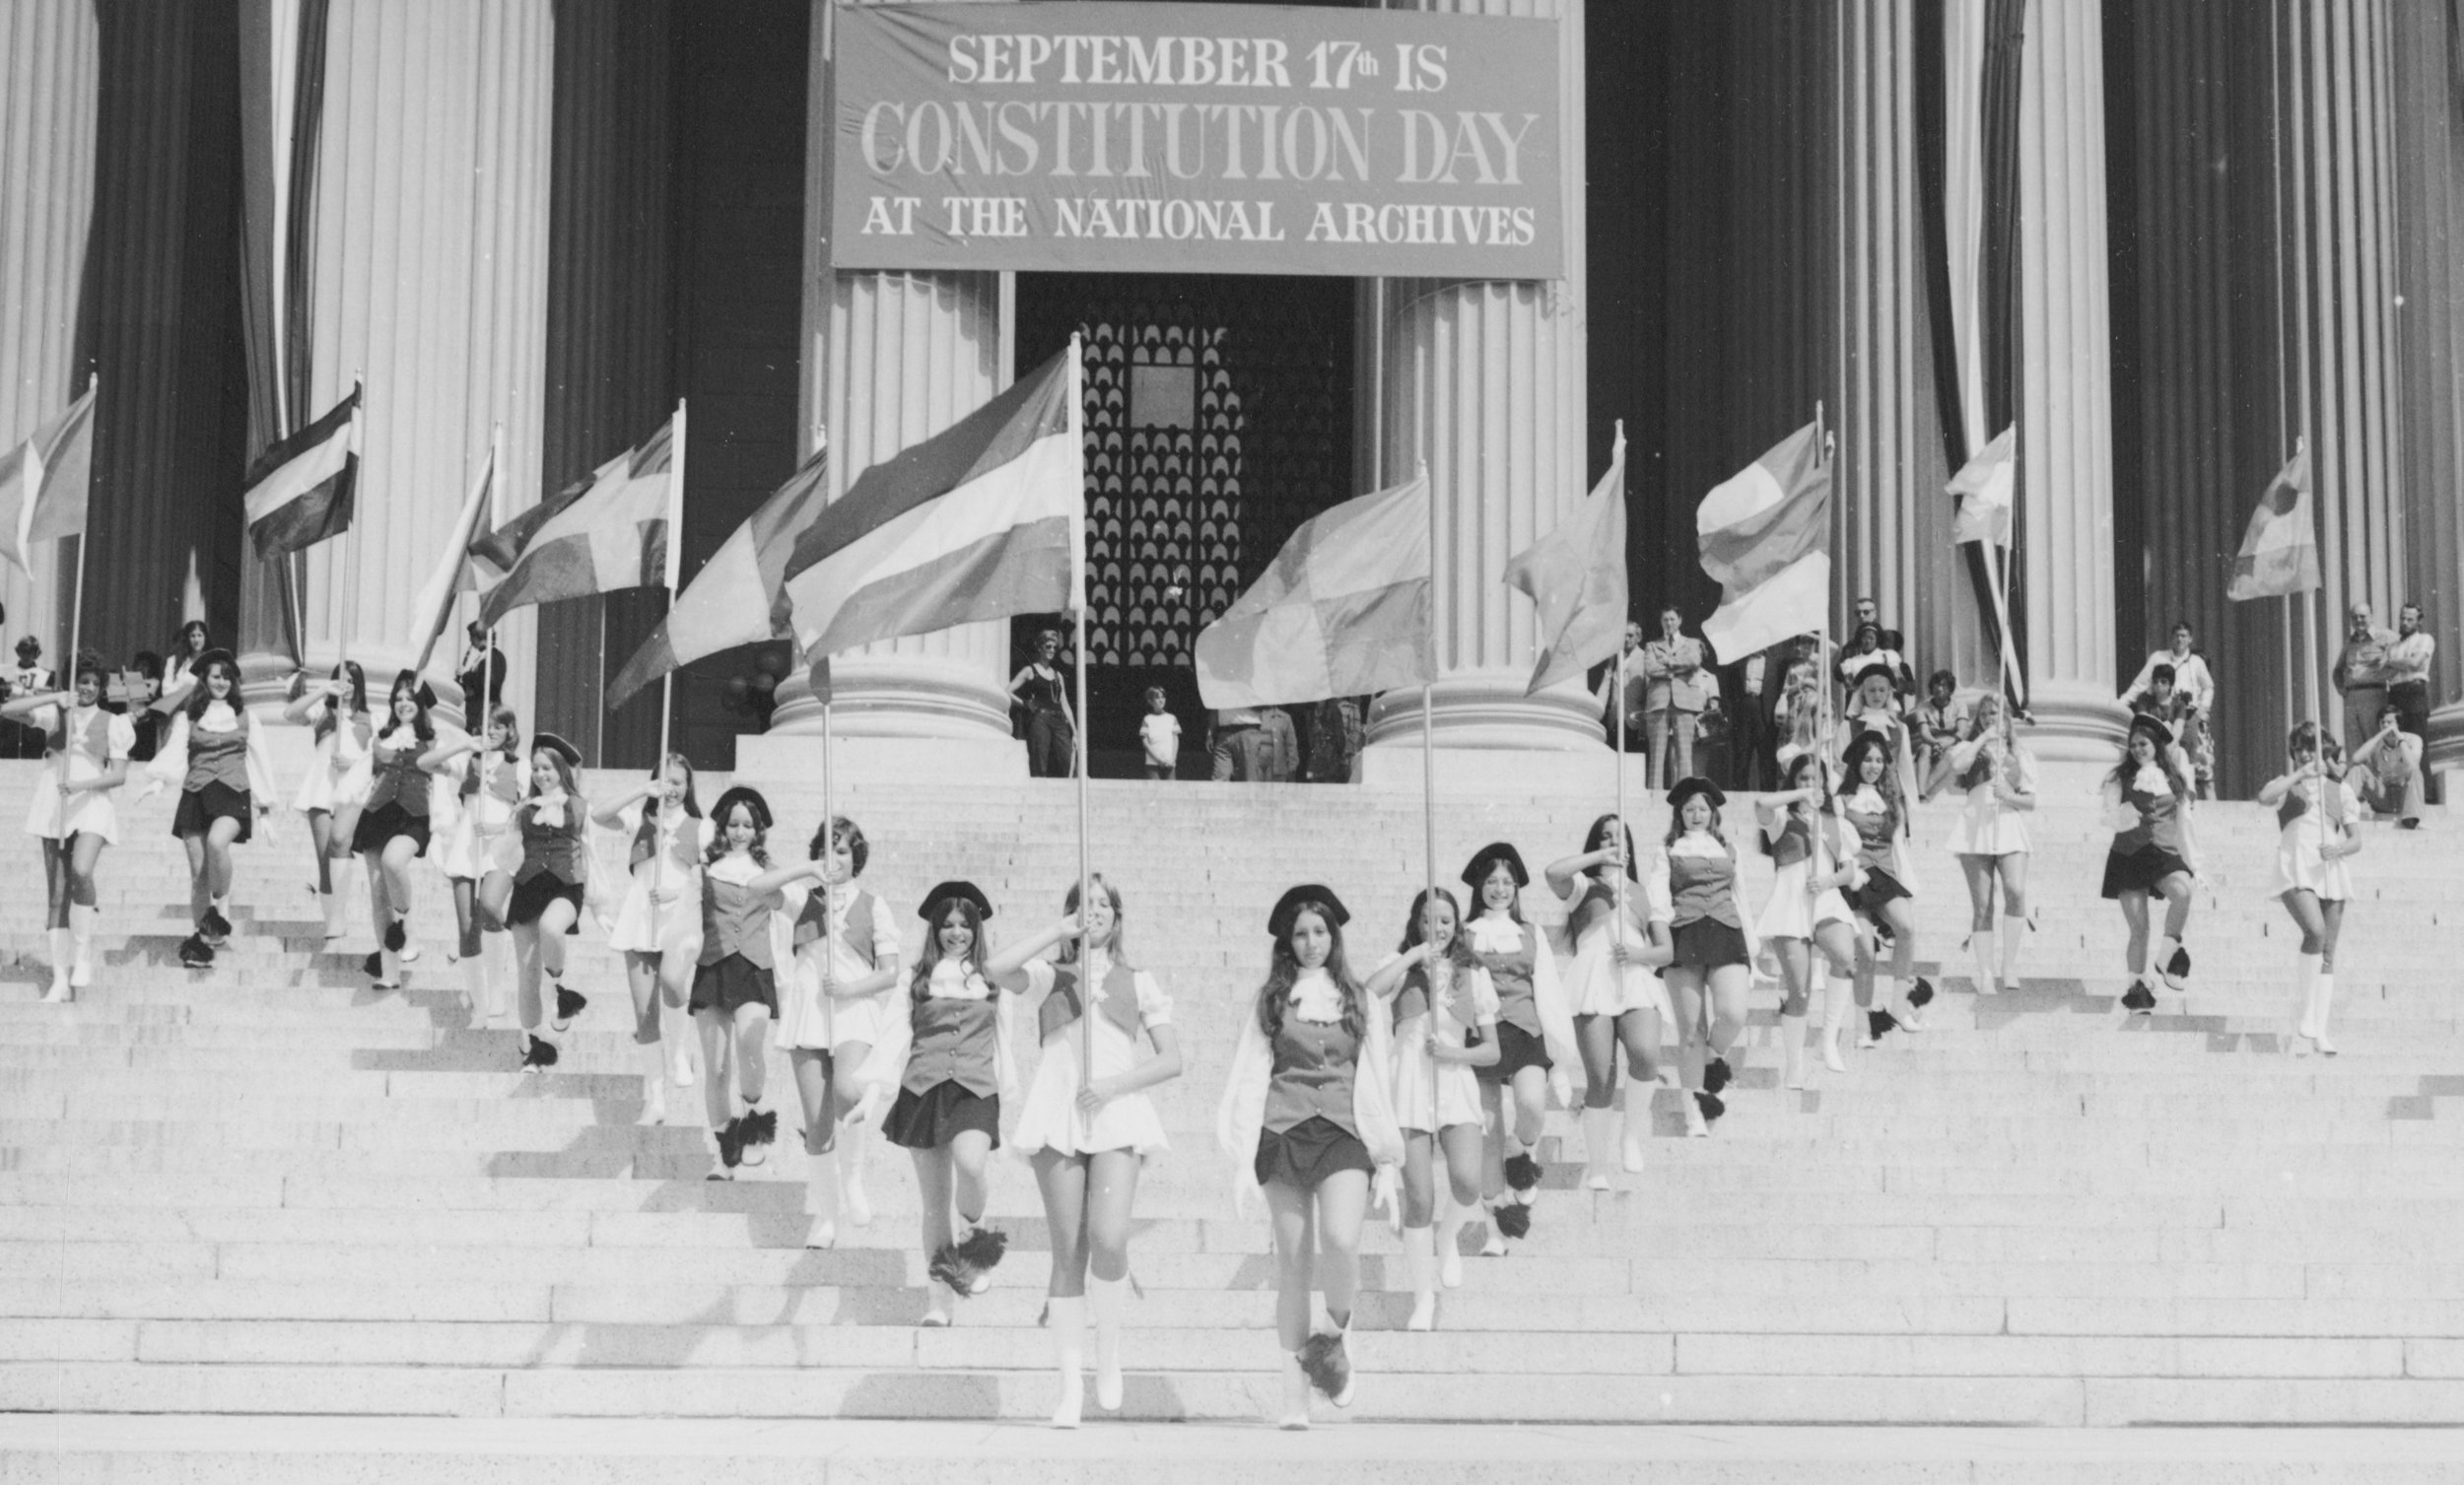 Celebrating at the National Archives in 1974.